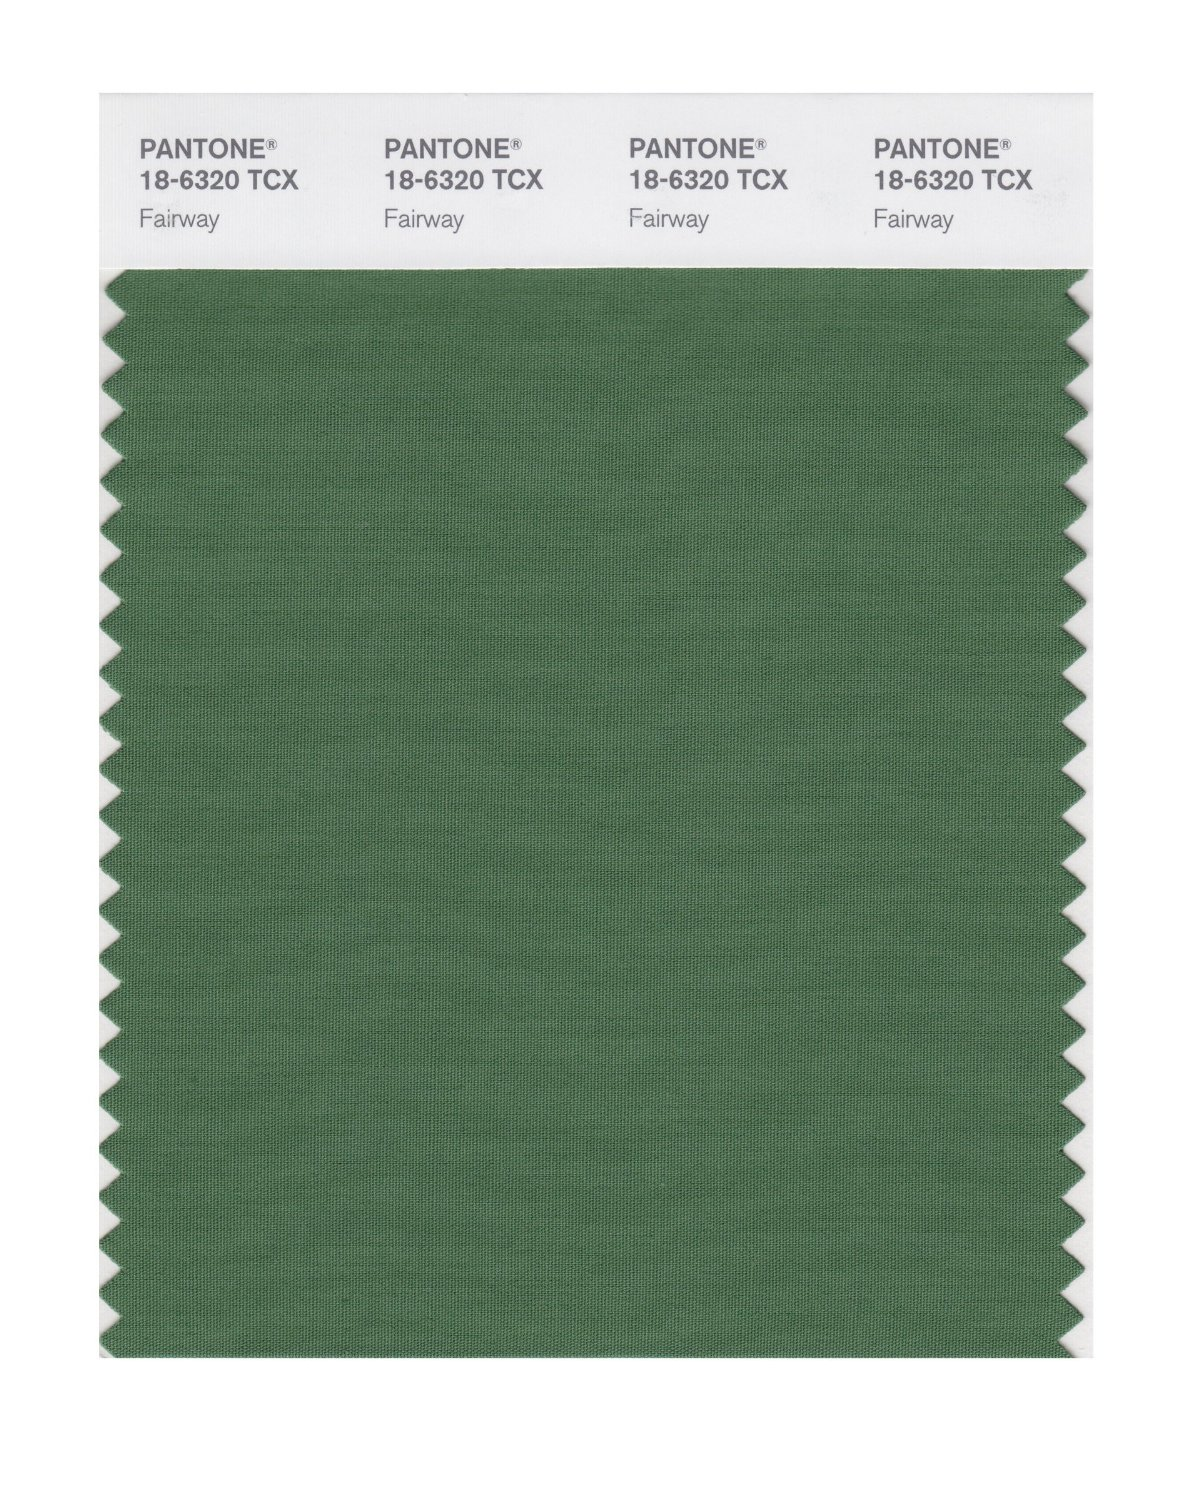 Pantone Smart Swatch 18-6320 Fairway